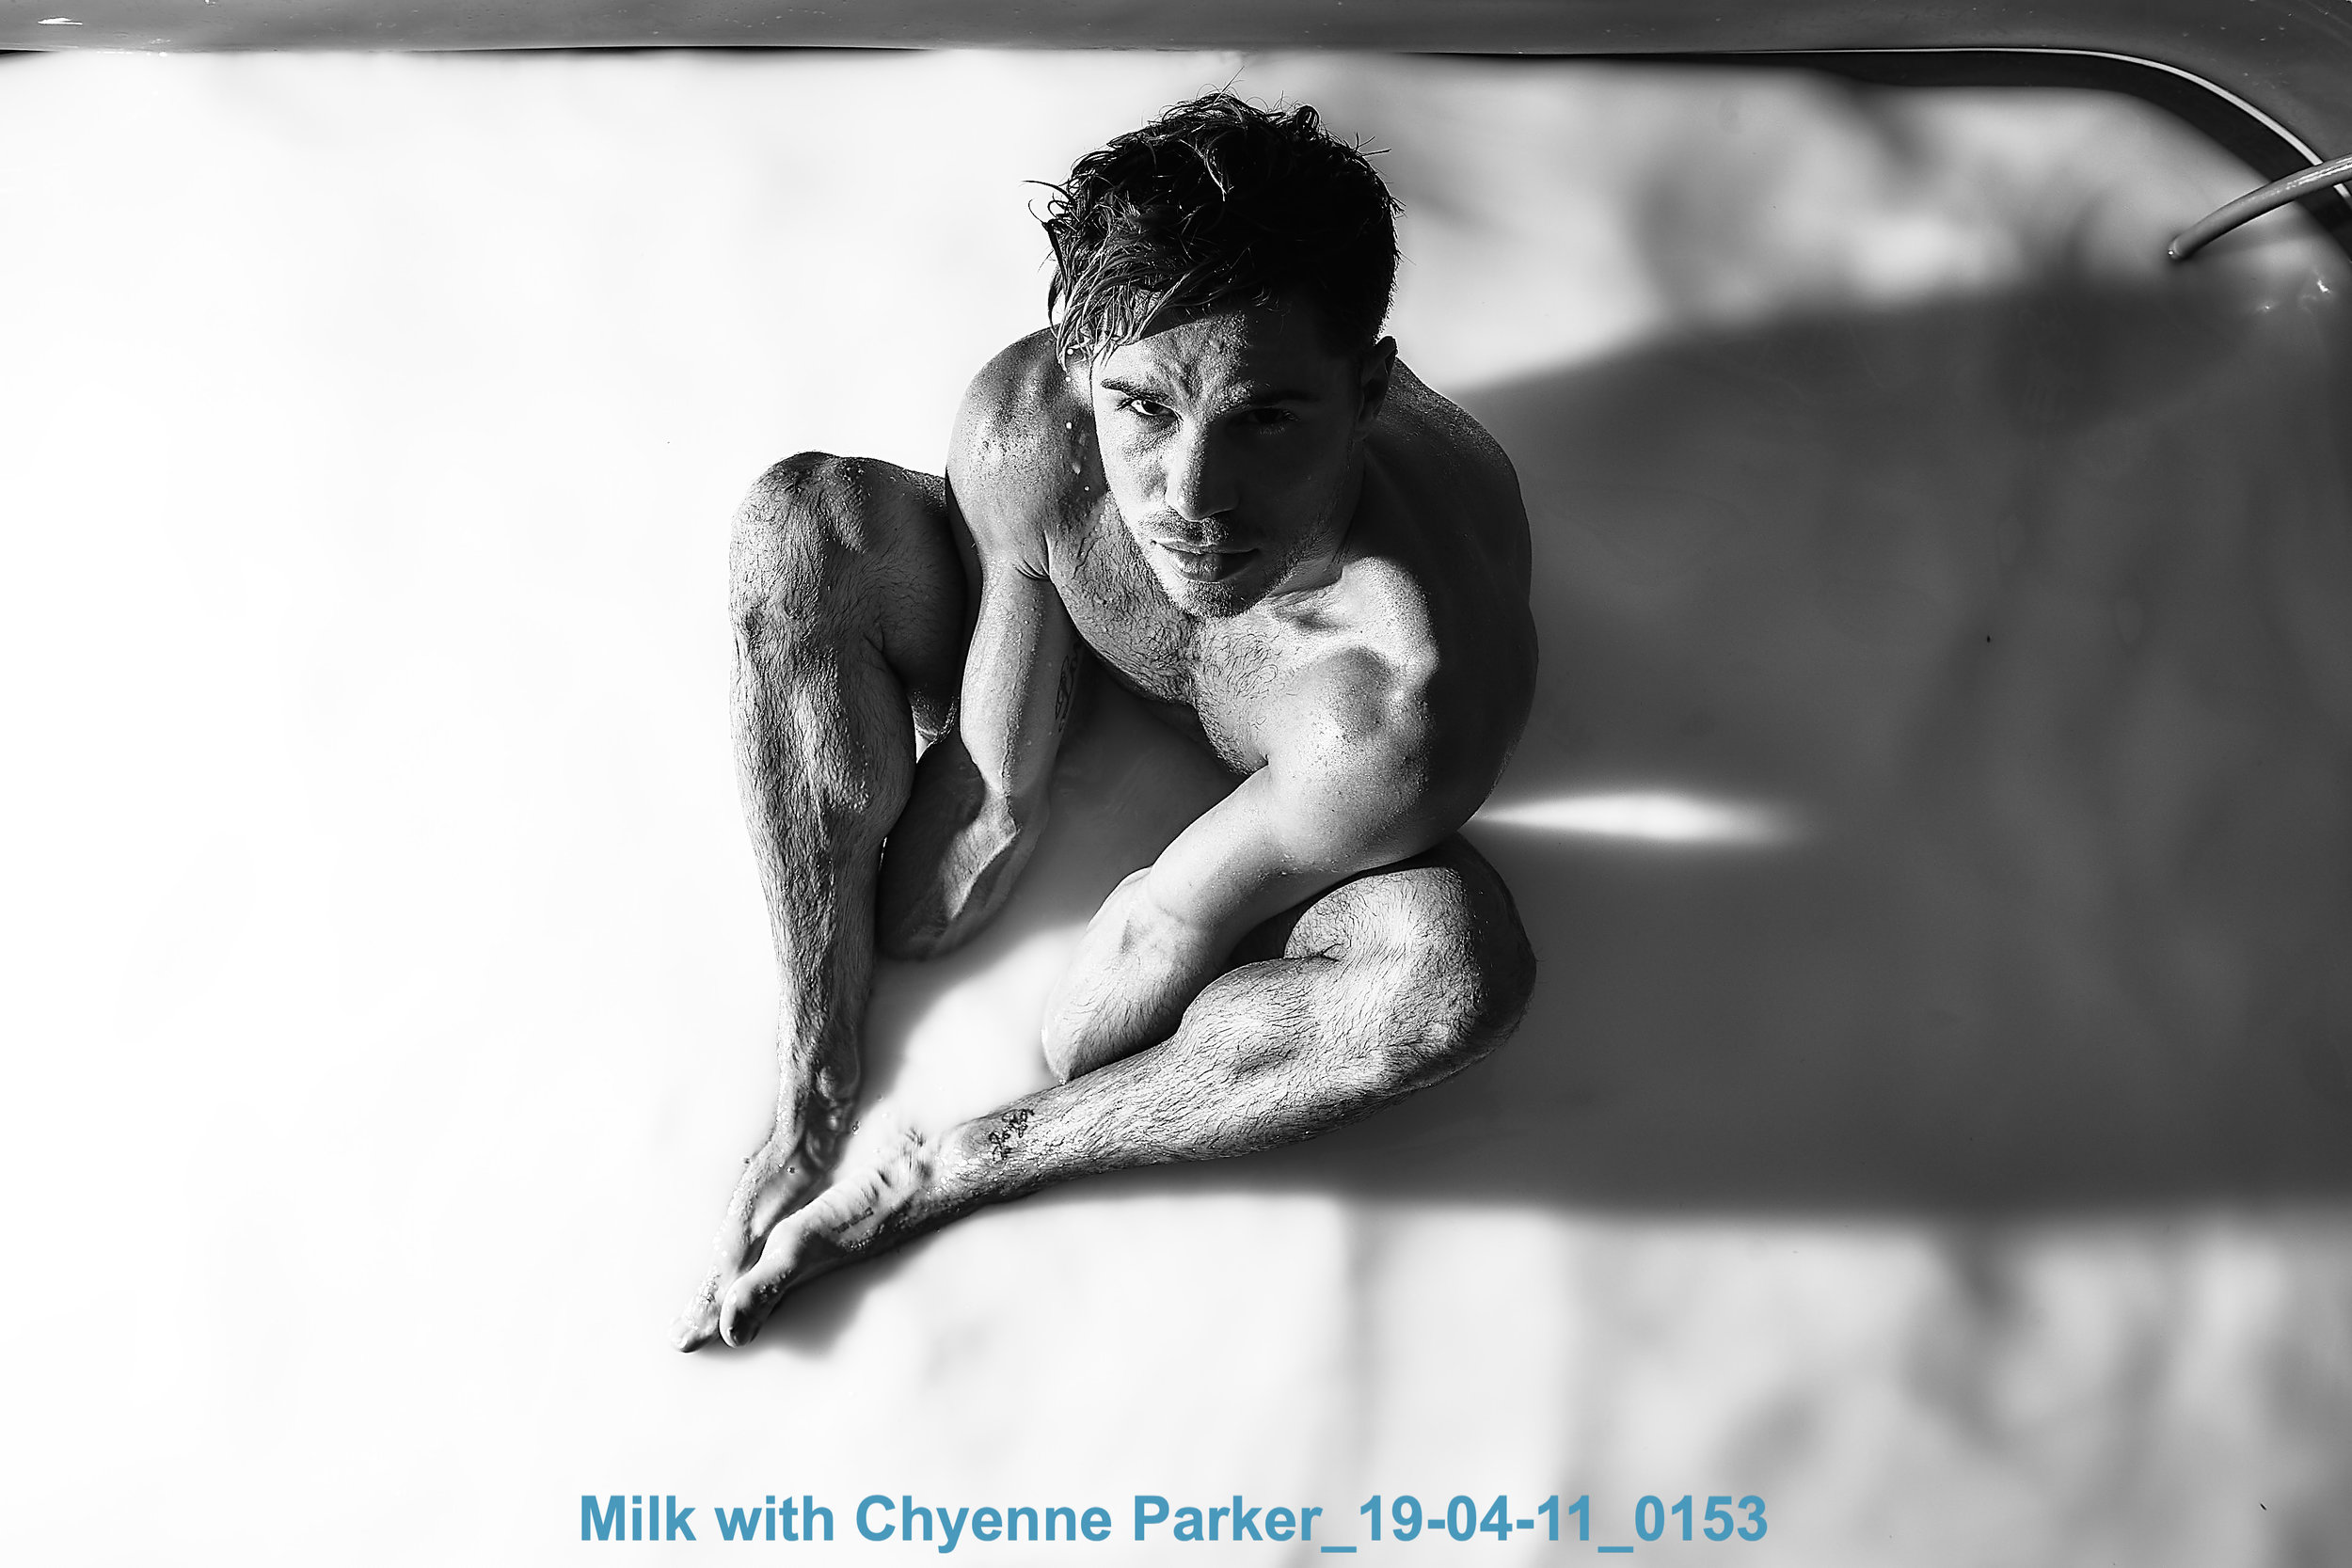 Milk with Chyenne Parker_19-04-11_0153.jpg